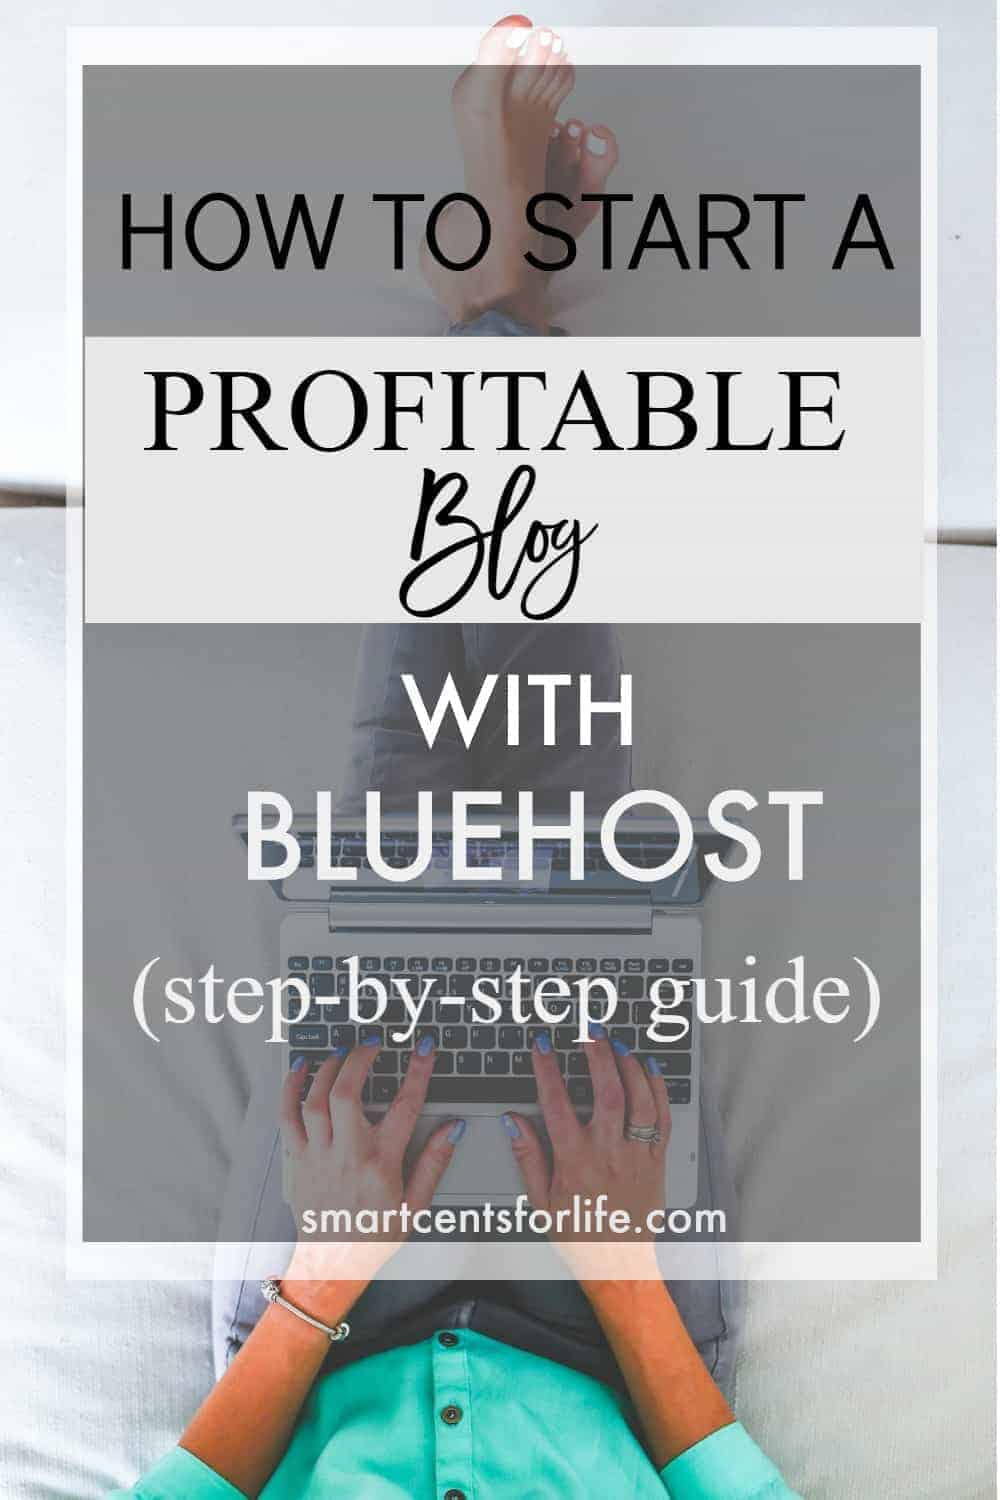 This guide will show you the exact steps to start a successful profitable blog. Follow this simple step-by-step tutorial and start making money with your blog from day one!